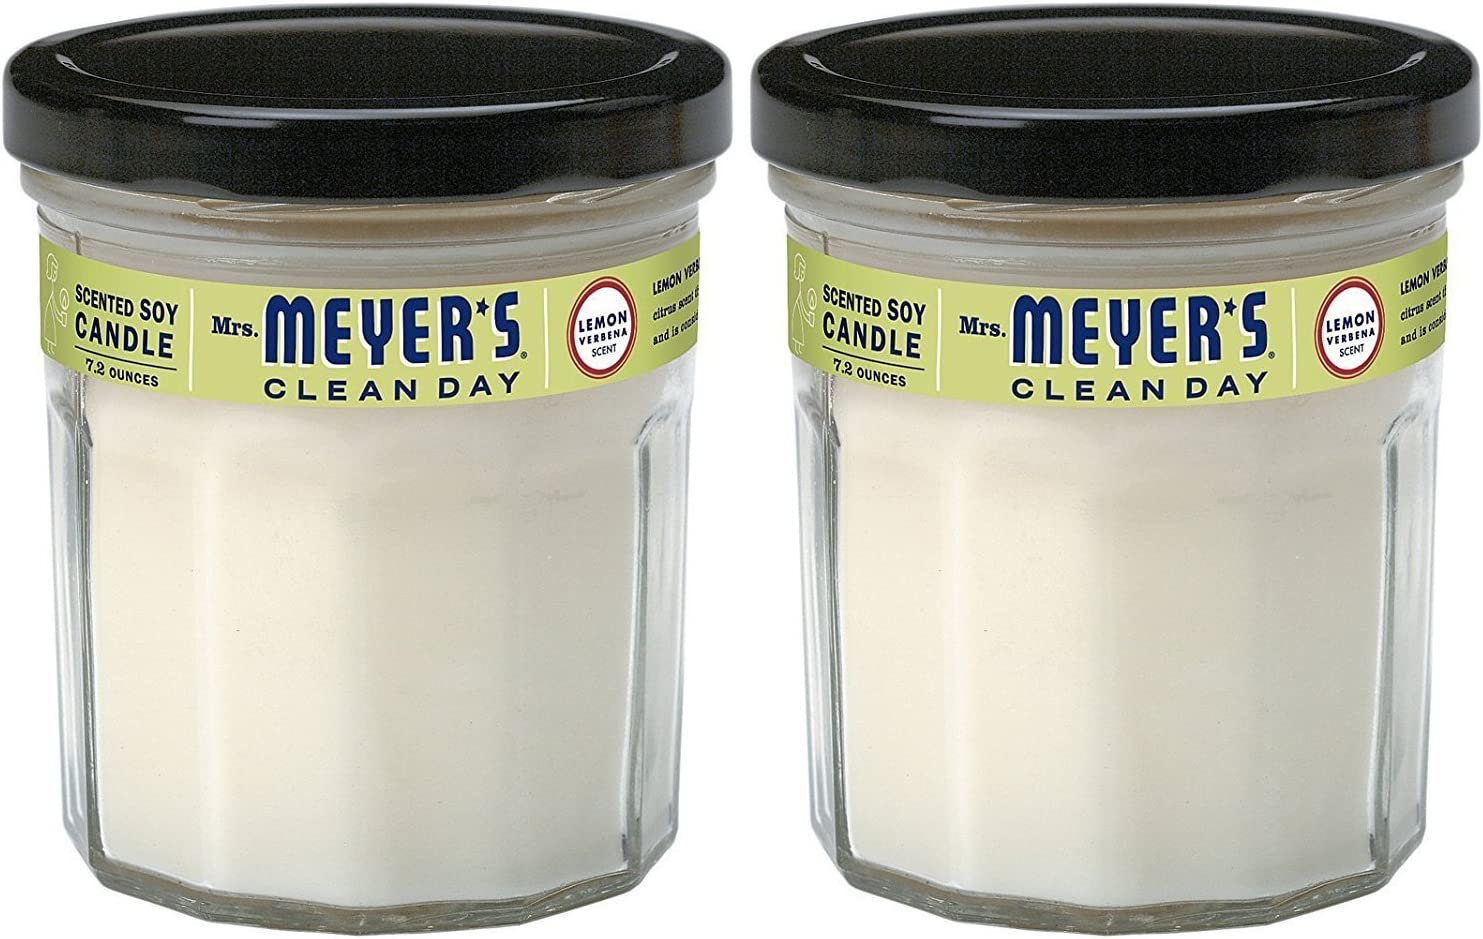 7.2 Ounce Mrs Candle Meyers Clean Day Scented Soy Candle Pack of 2 Lemon Verbena